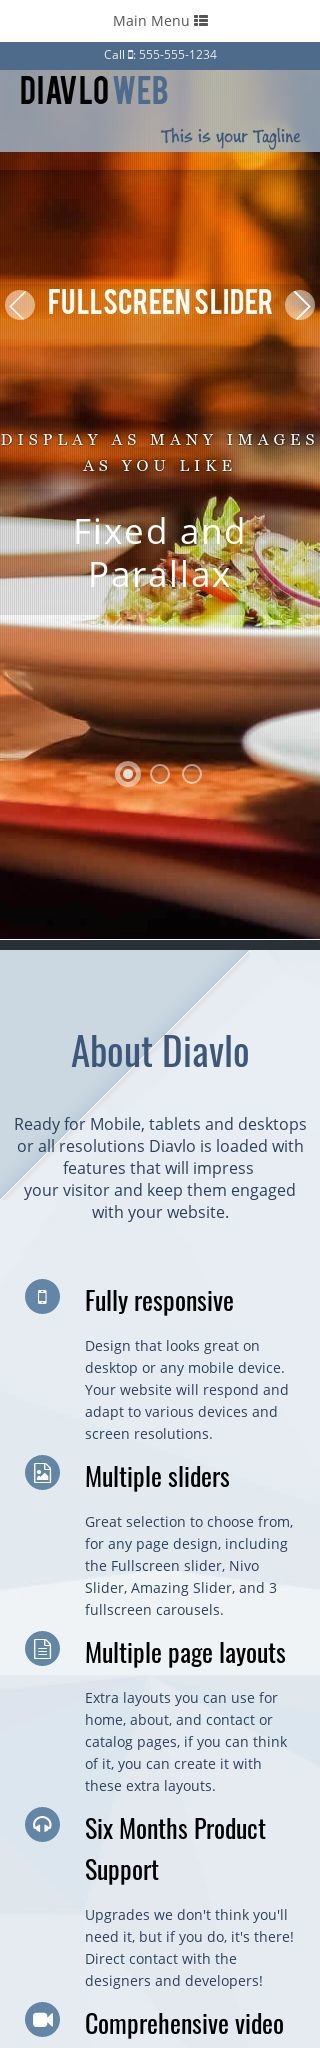 Mobile: Restaurant Web Template